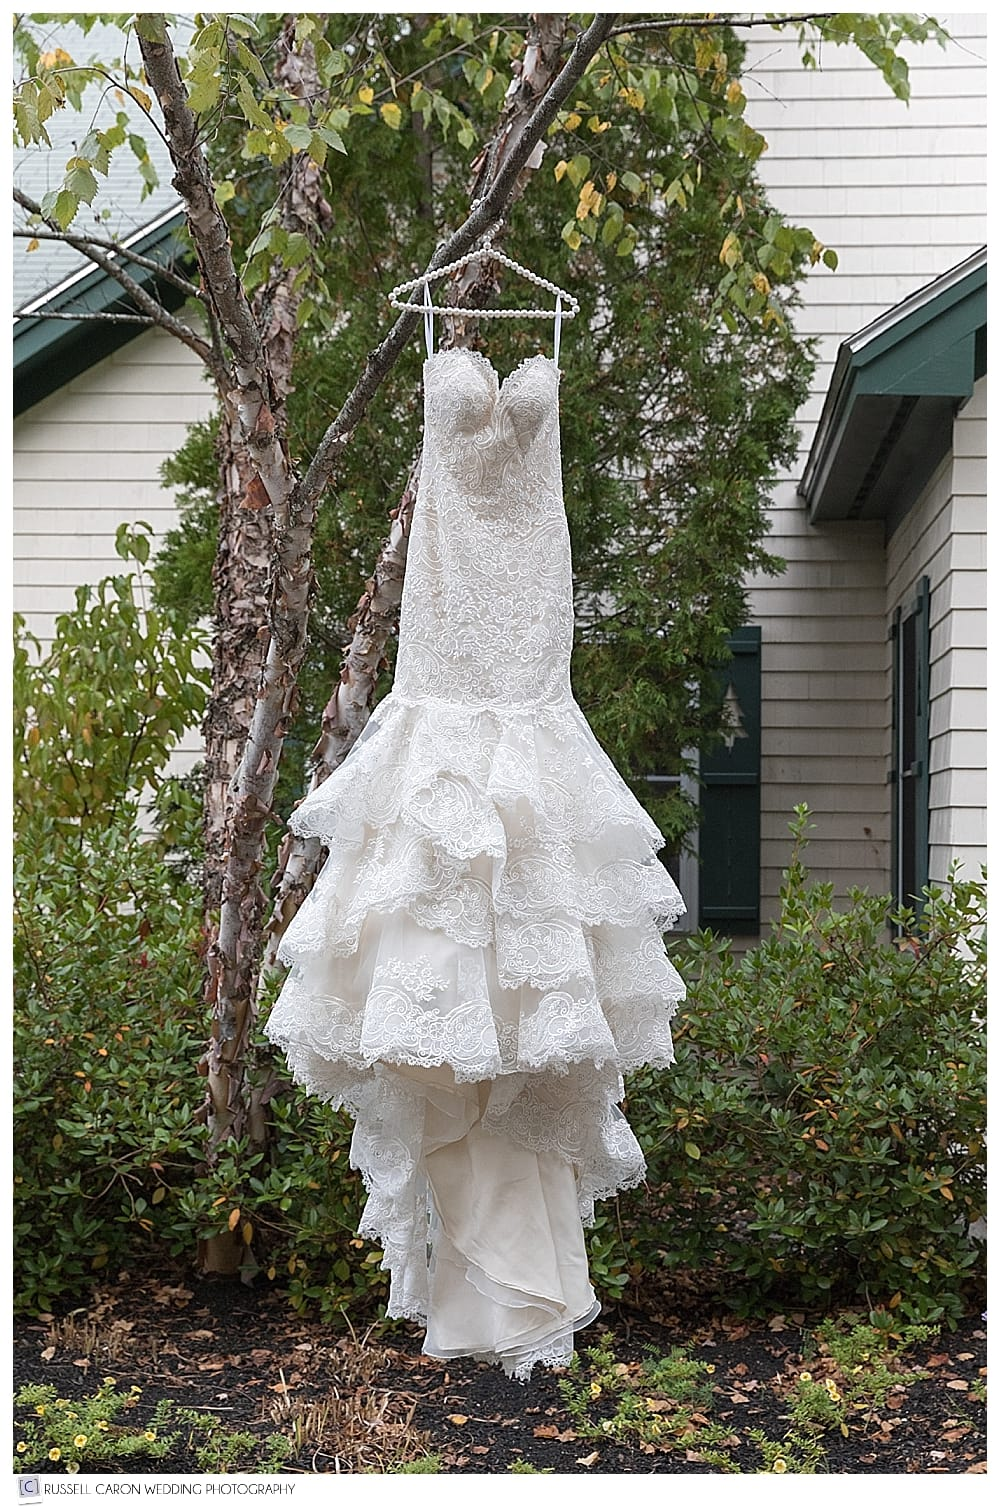 allure bridal gown hanging in a tree